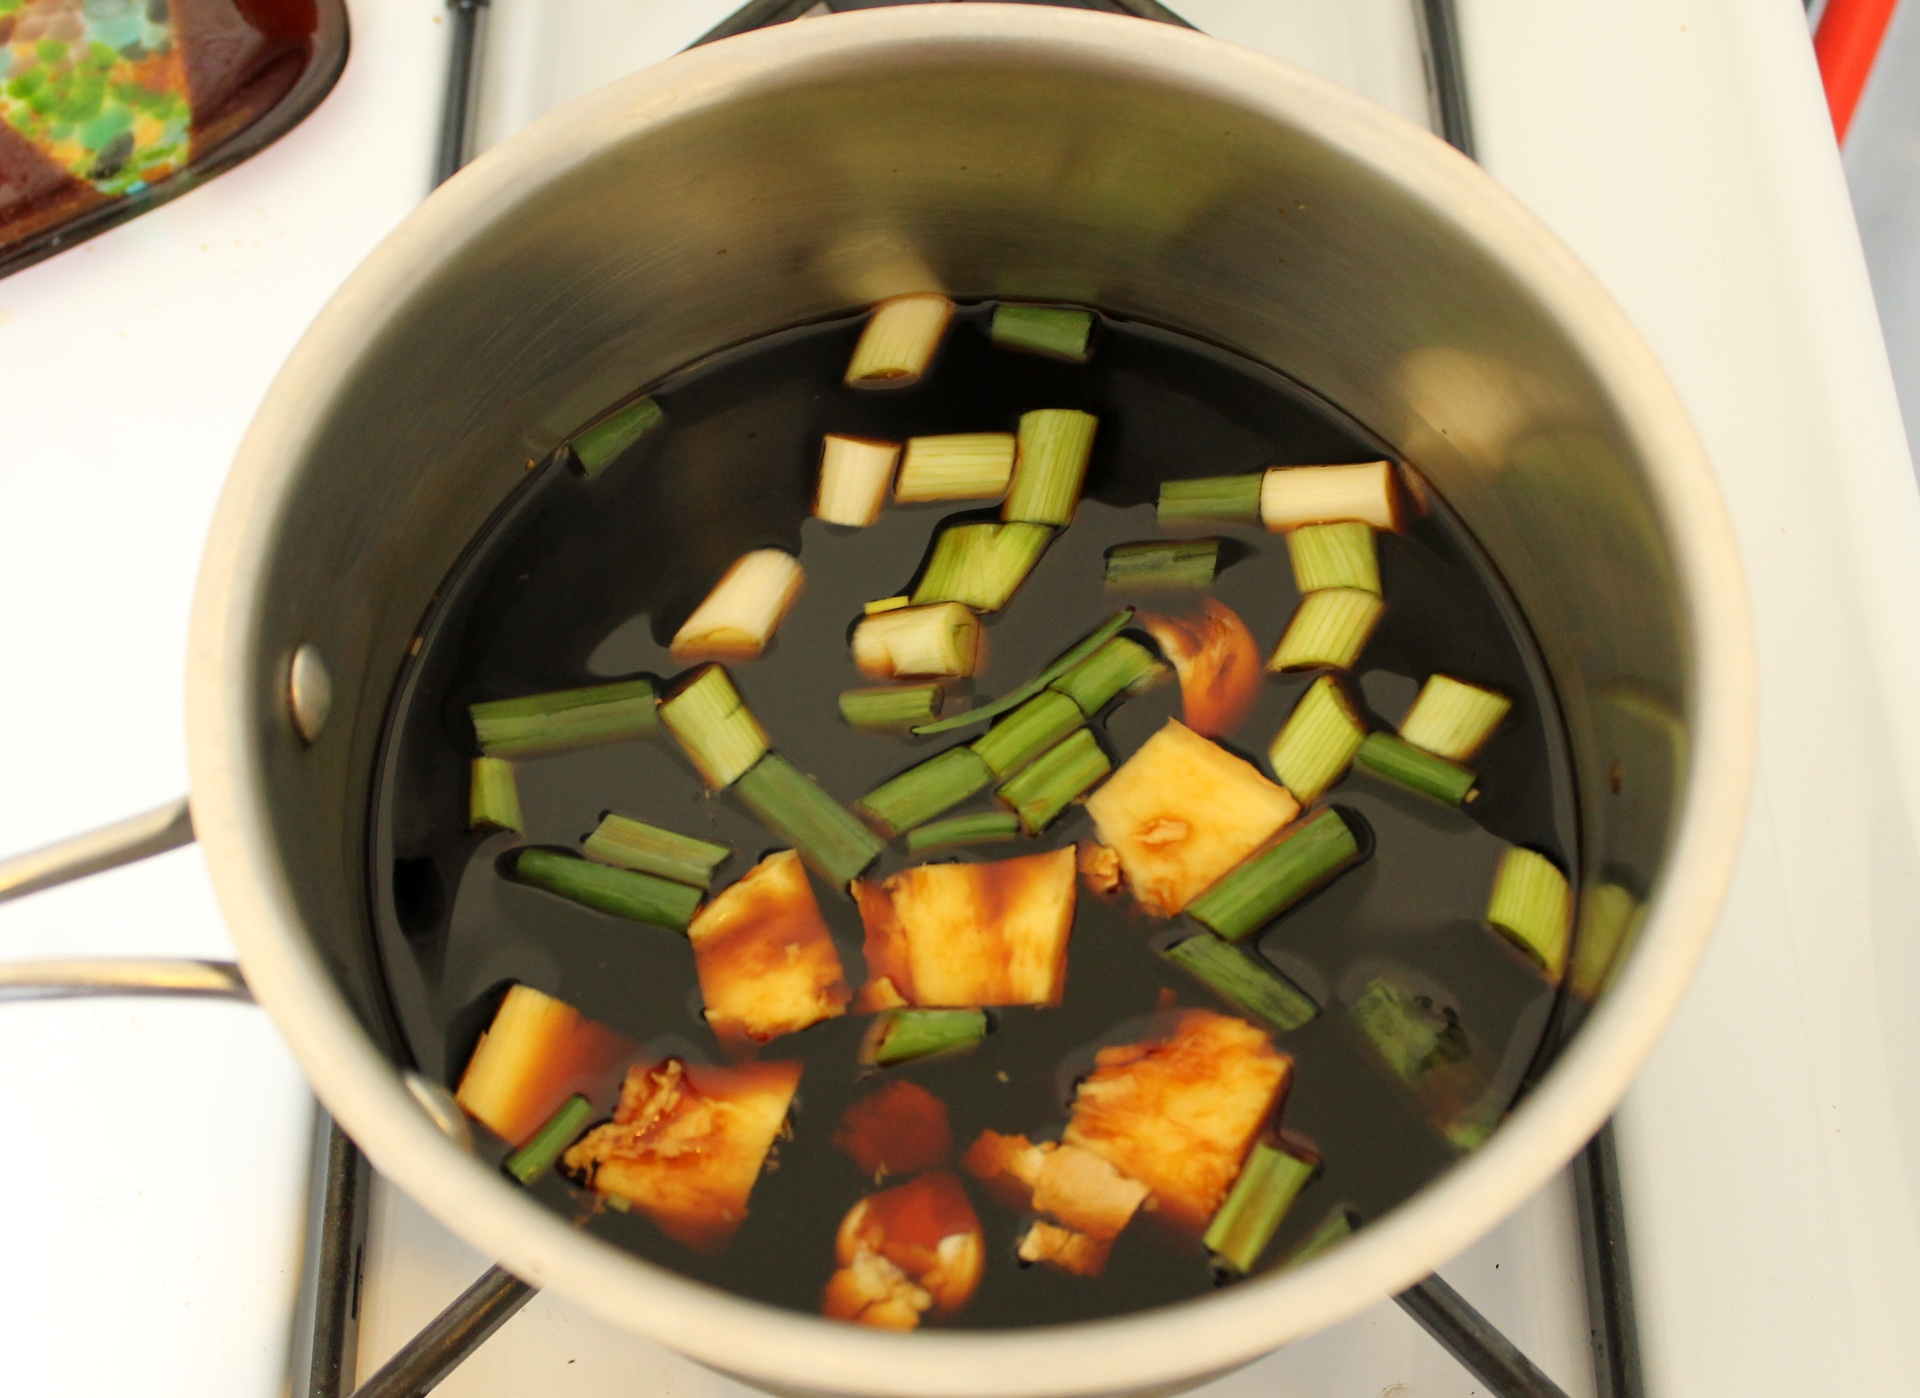 To make shoyu tare, combine soy sauce, sake, scallions, ginger, mirin, and garlic in a medium saucepan. Bring to a boil over high heat. Remove from the heat and let cool to room temperature. Strain and discard solids.